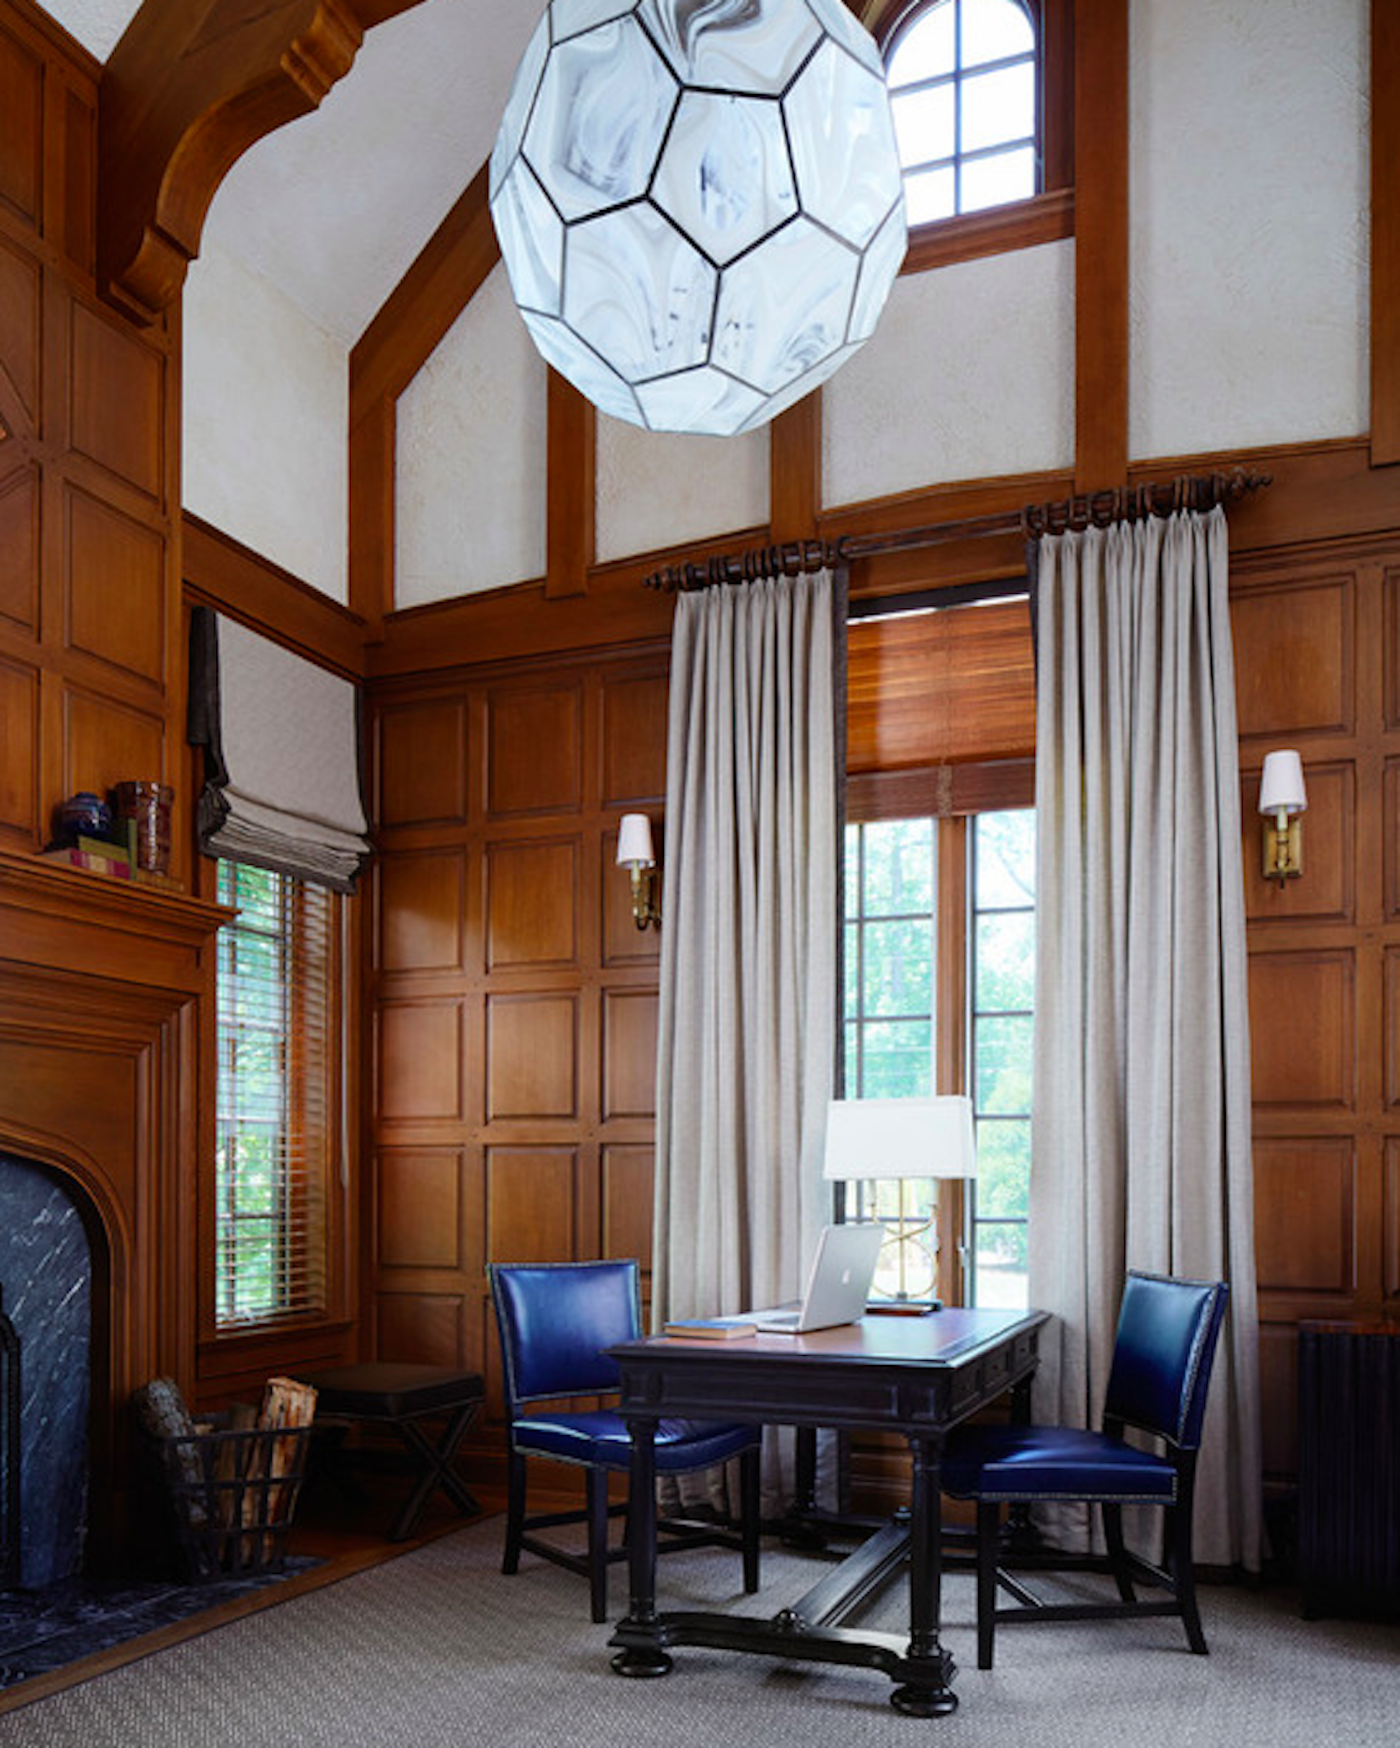 Imposing paneled walls are softened with simple curtains. by Schlagenhaft Studio